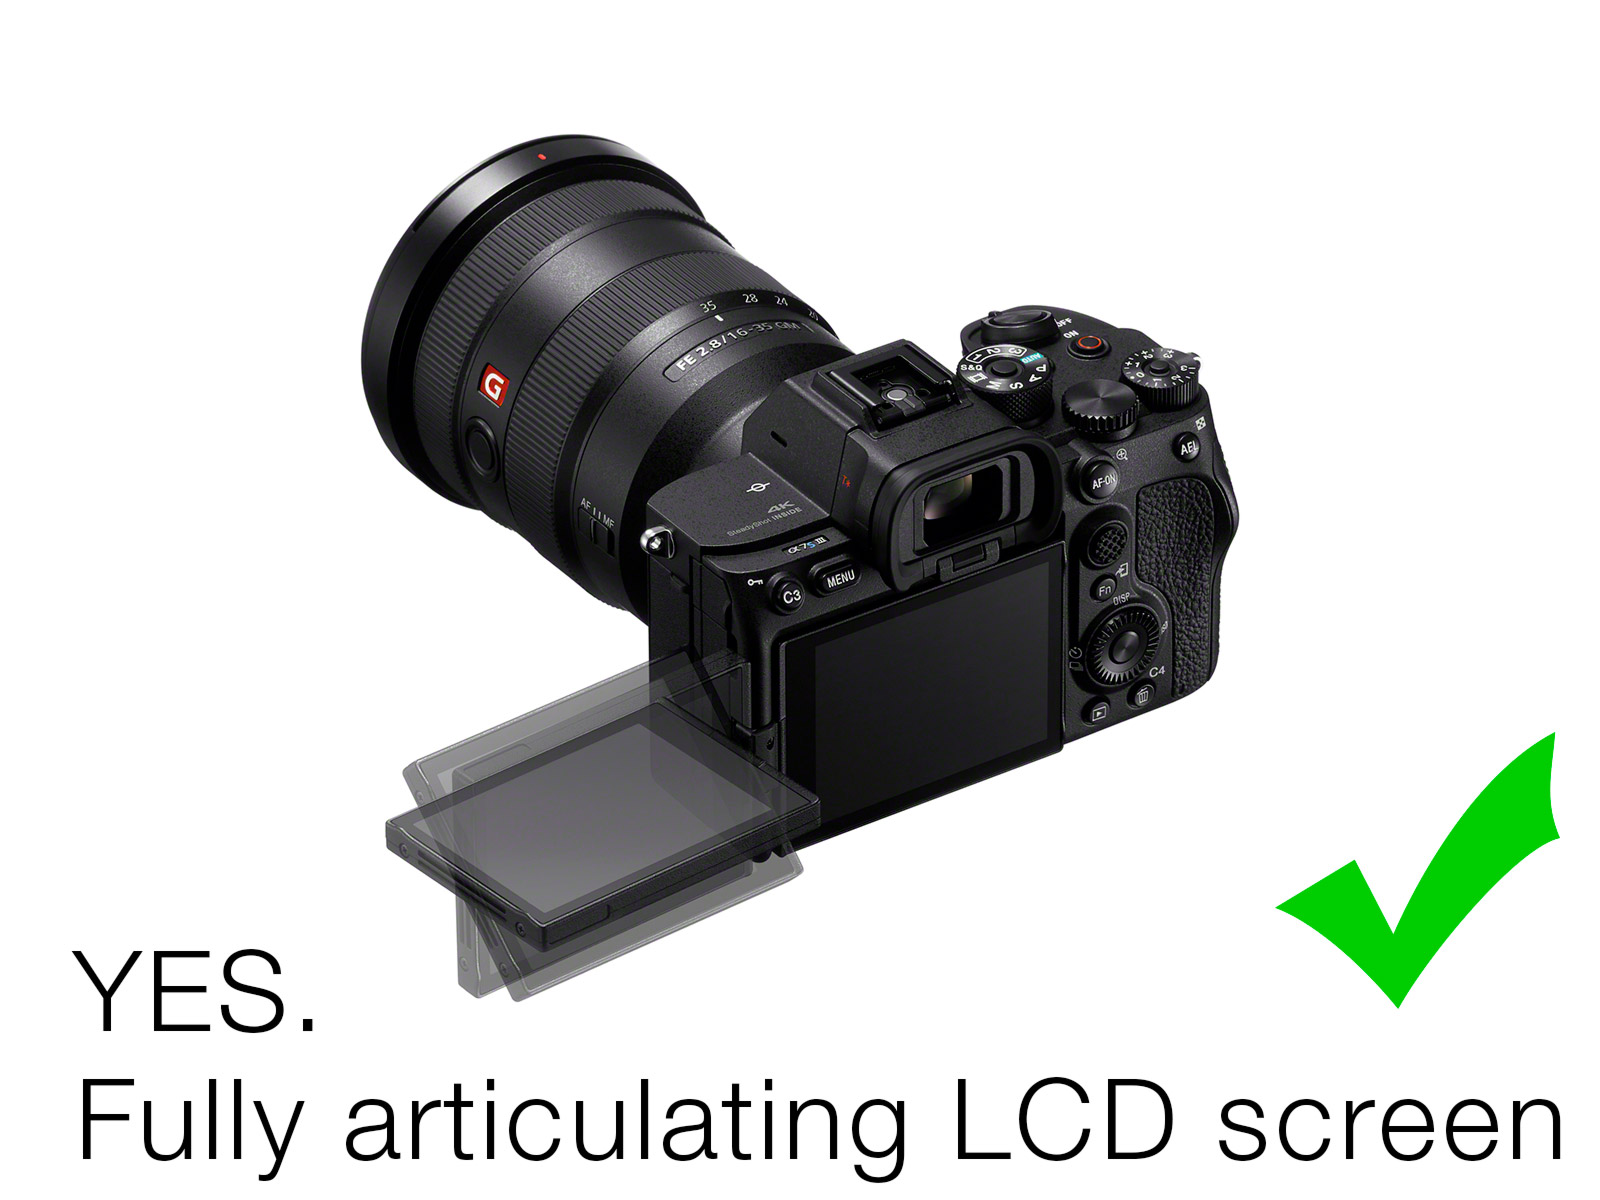 The A7S III has an articulating screen - Sonys first ever